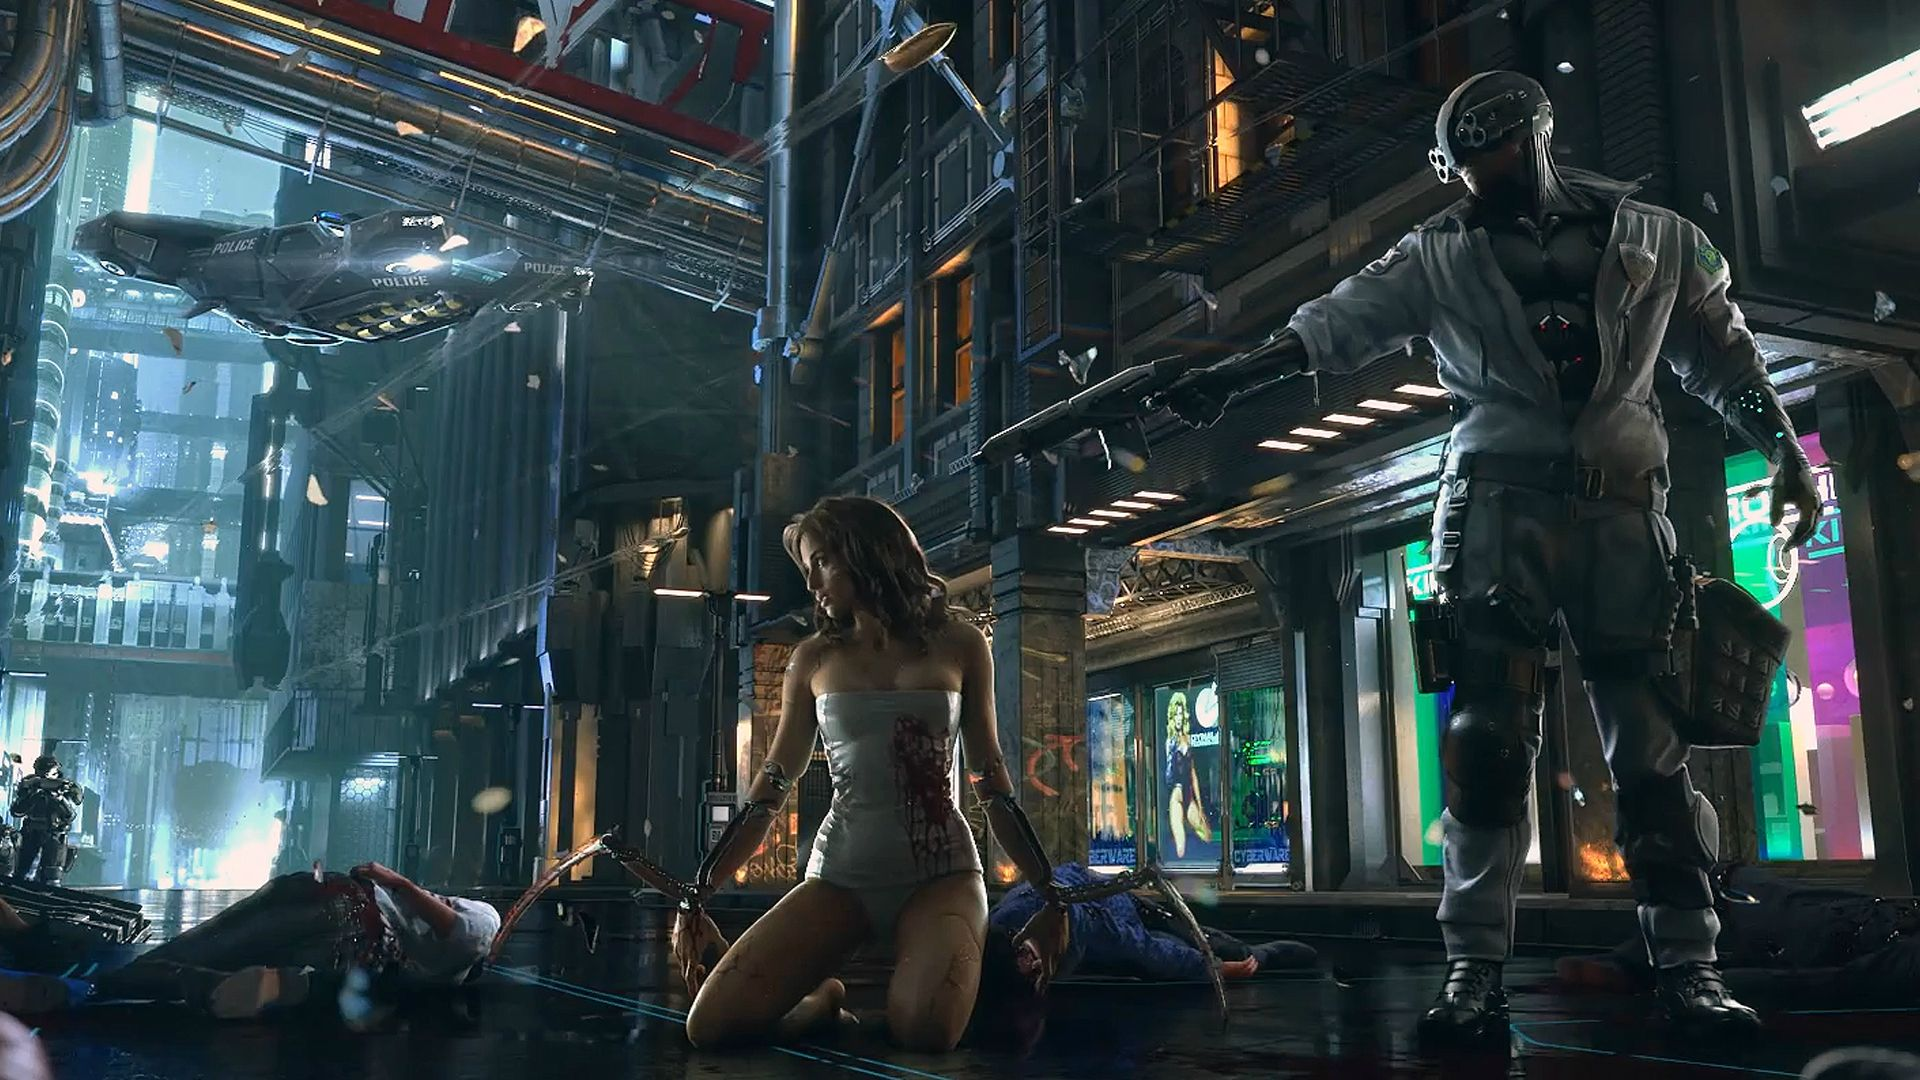 cyberpunk Cyberpunk 2077 Could Blow Witcher 3 Out Of The Water, Dev Says